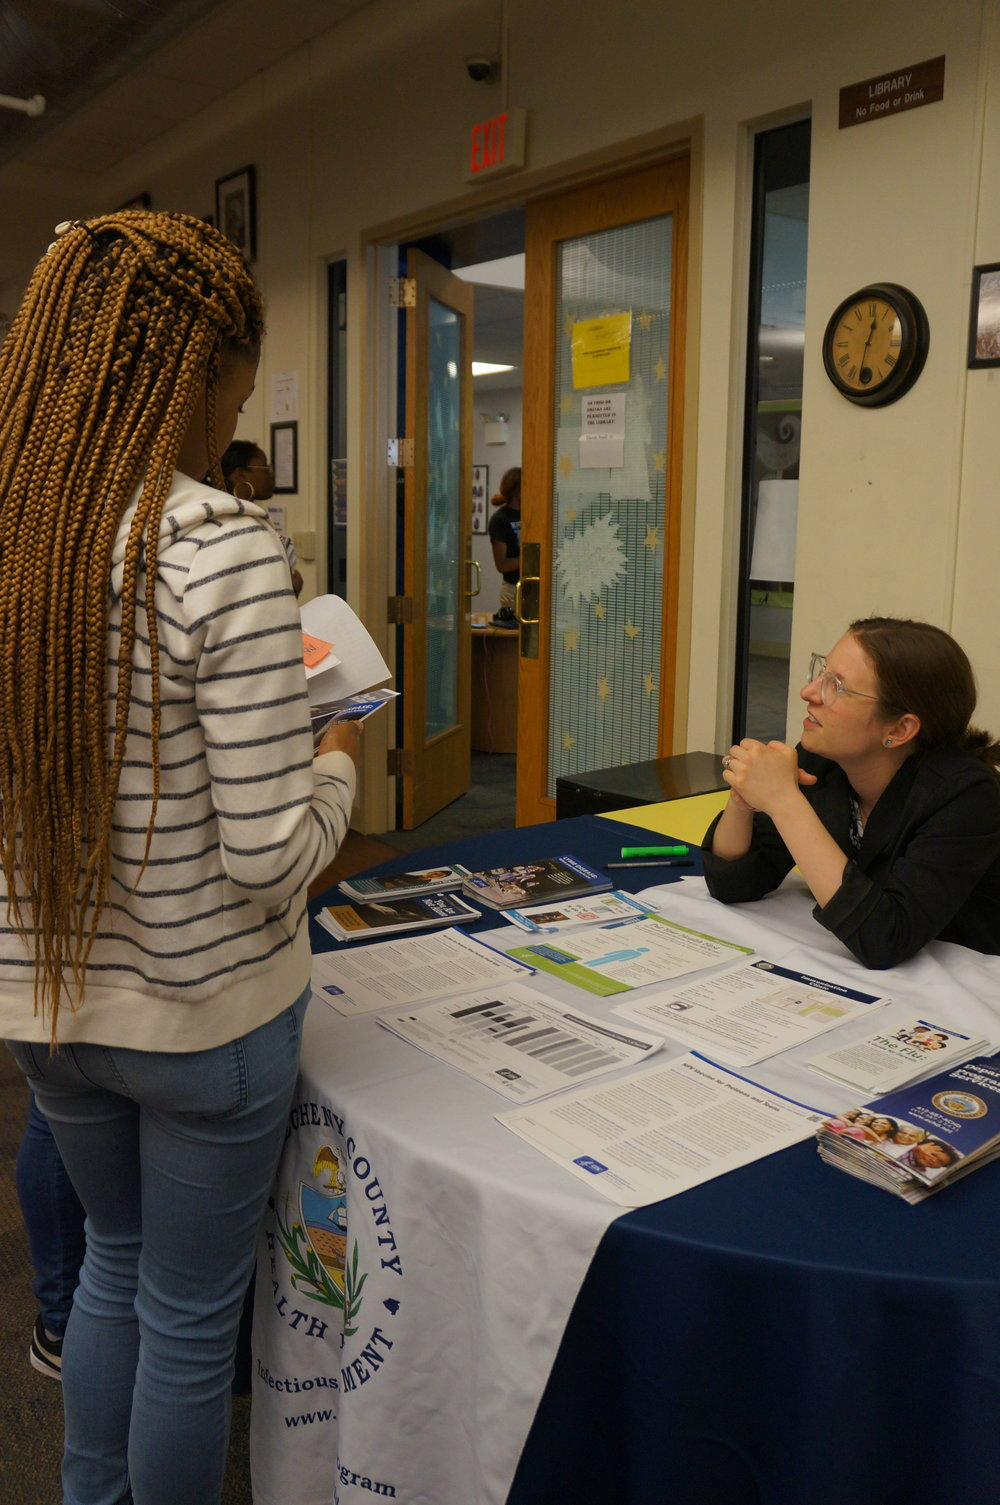 The Allegheny County Health Department explains their services to UP students at the 6-12 Health Fair